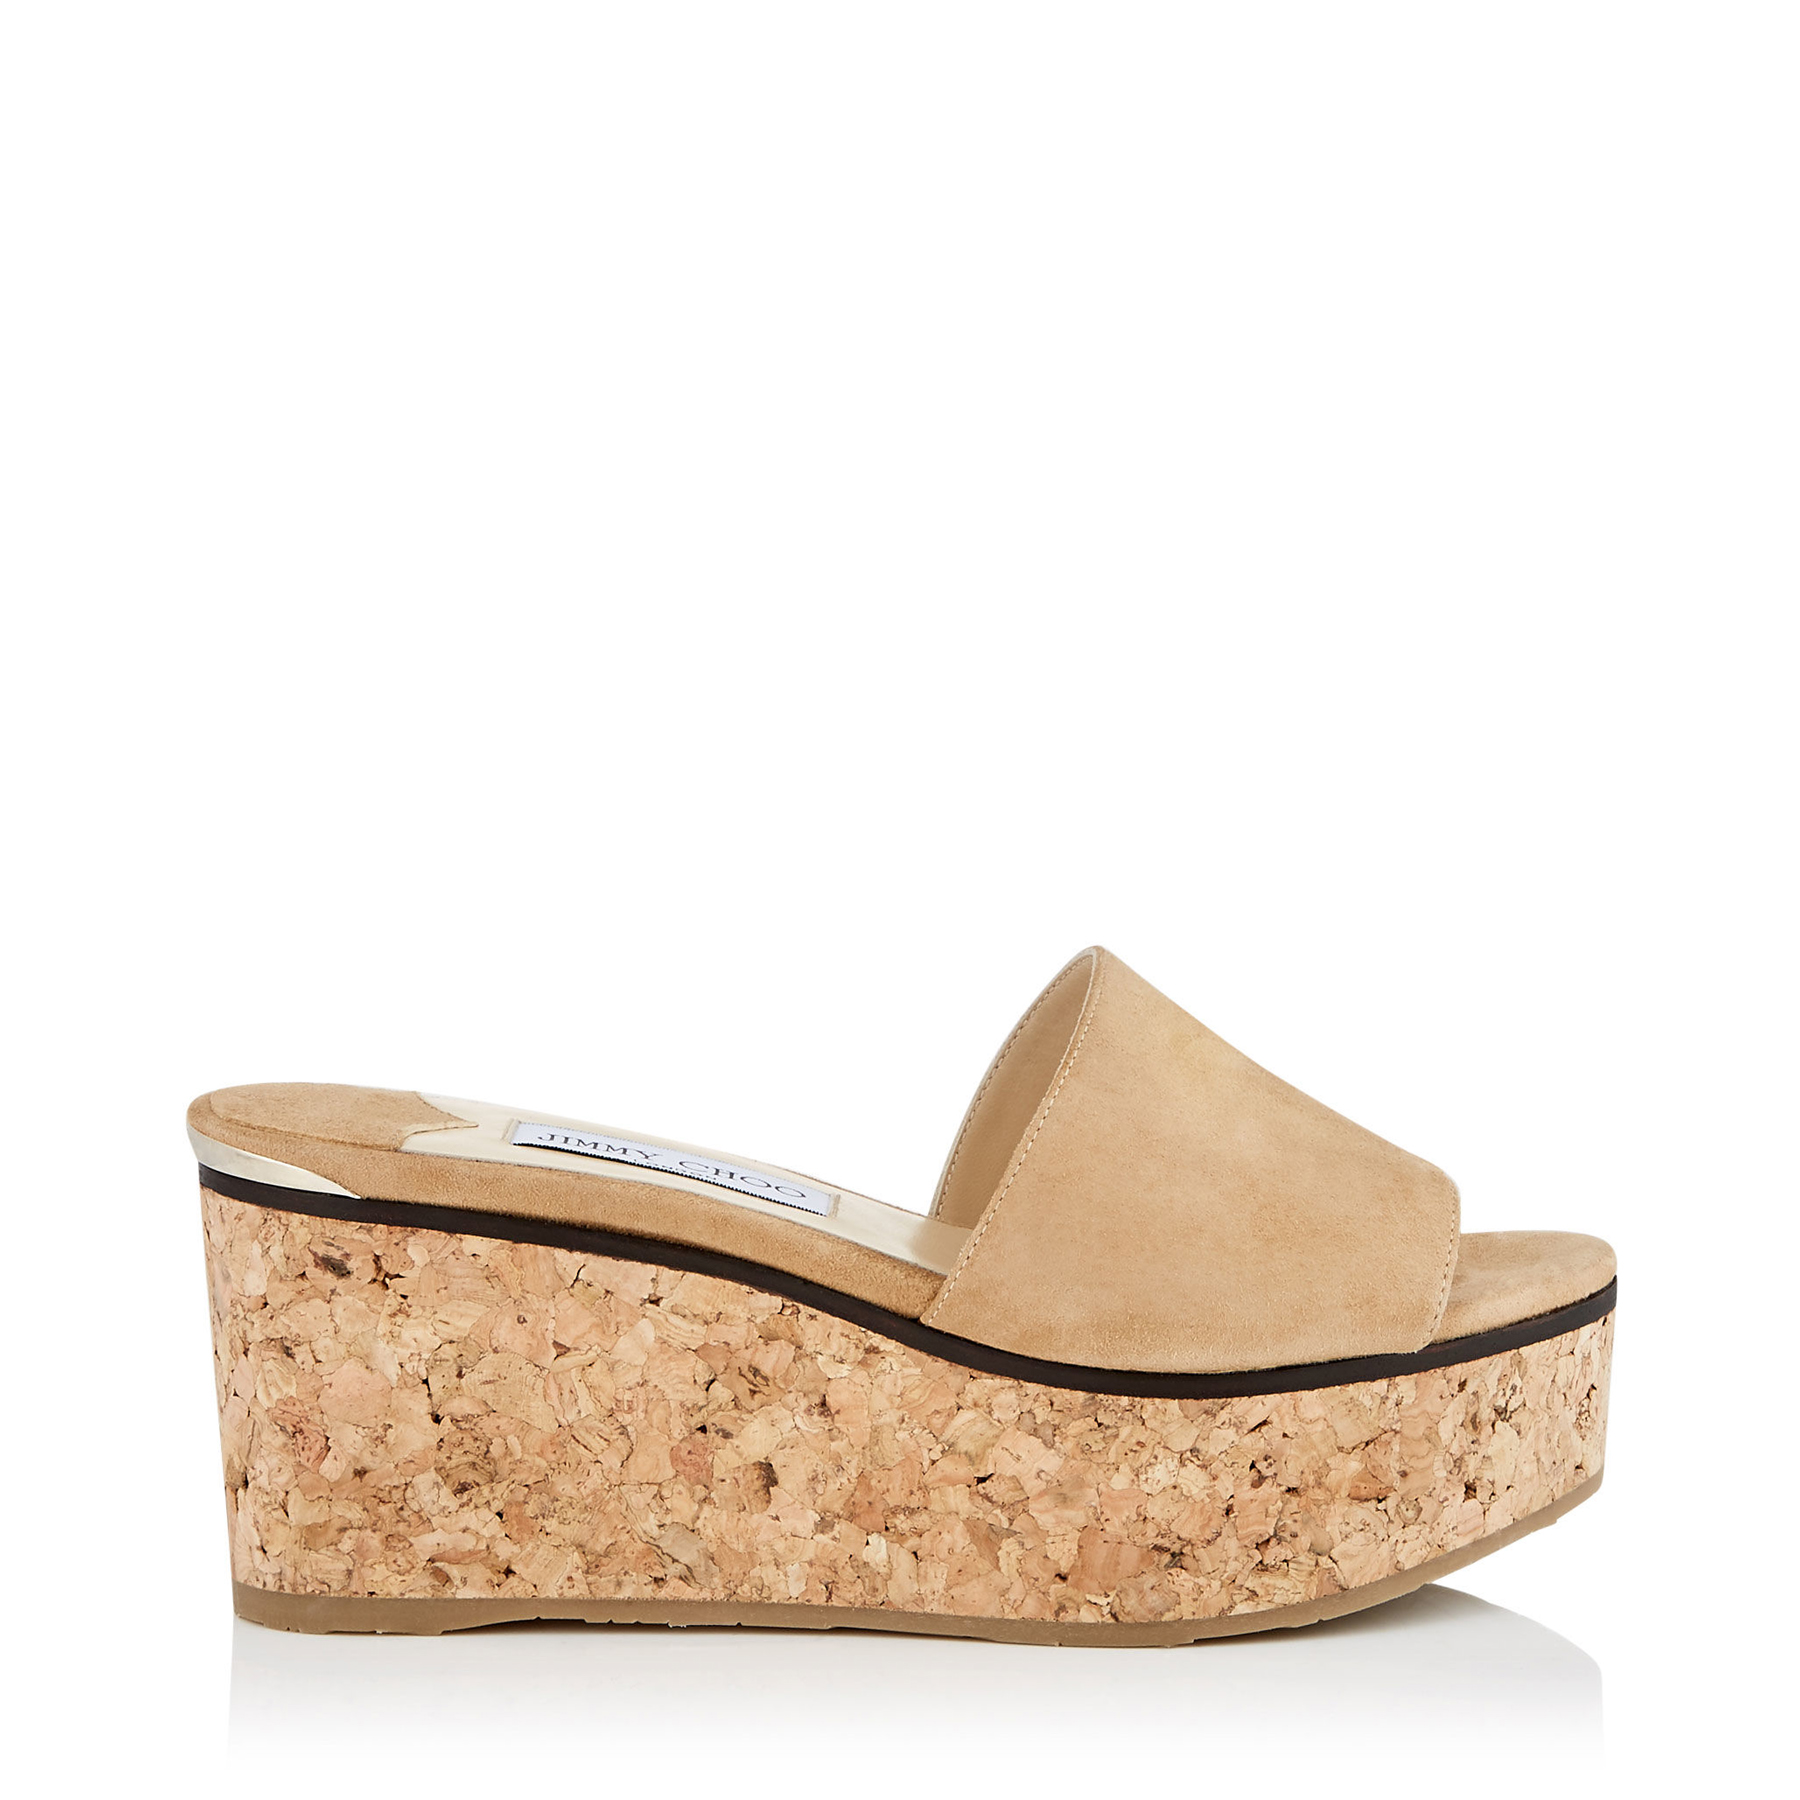 DEEDEE 80 Camel Suede Sandal Wedges by Jimmy Choo